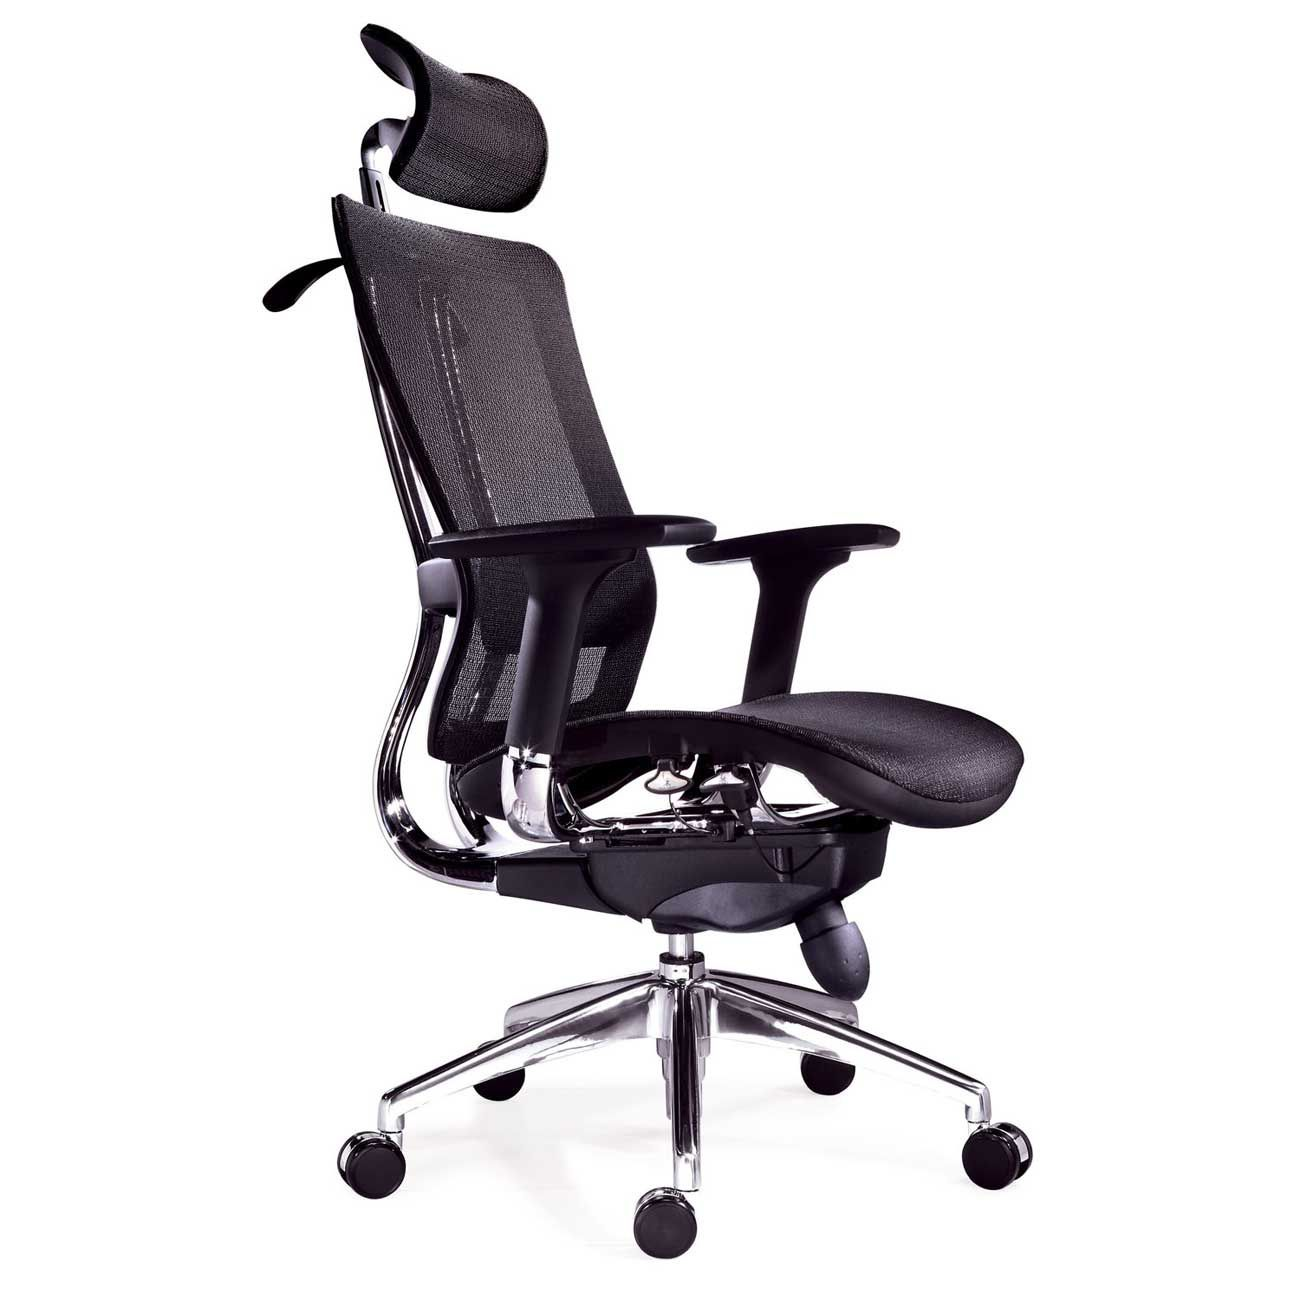 77 Office Chair Neck Support Furniture For Home Check More At Http